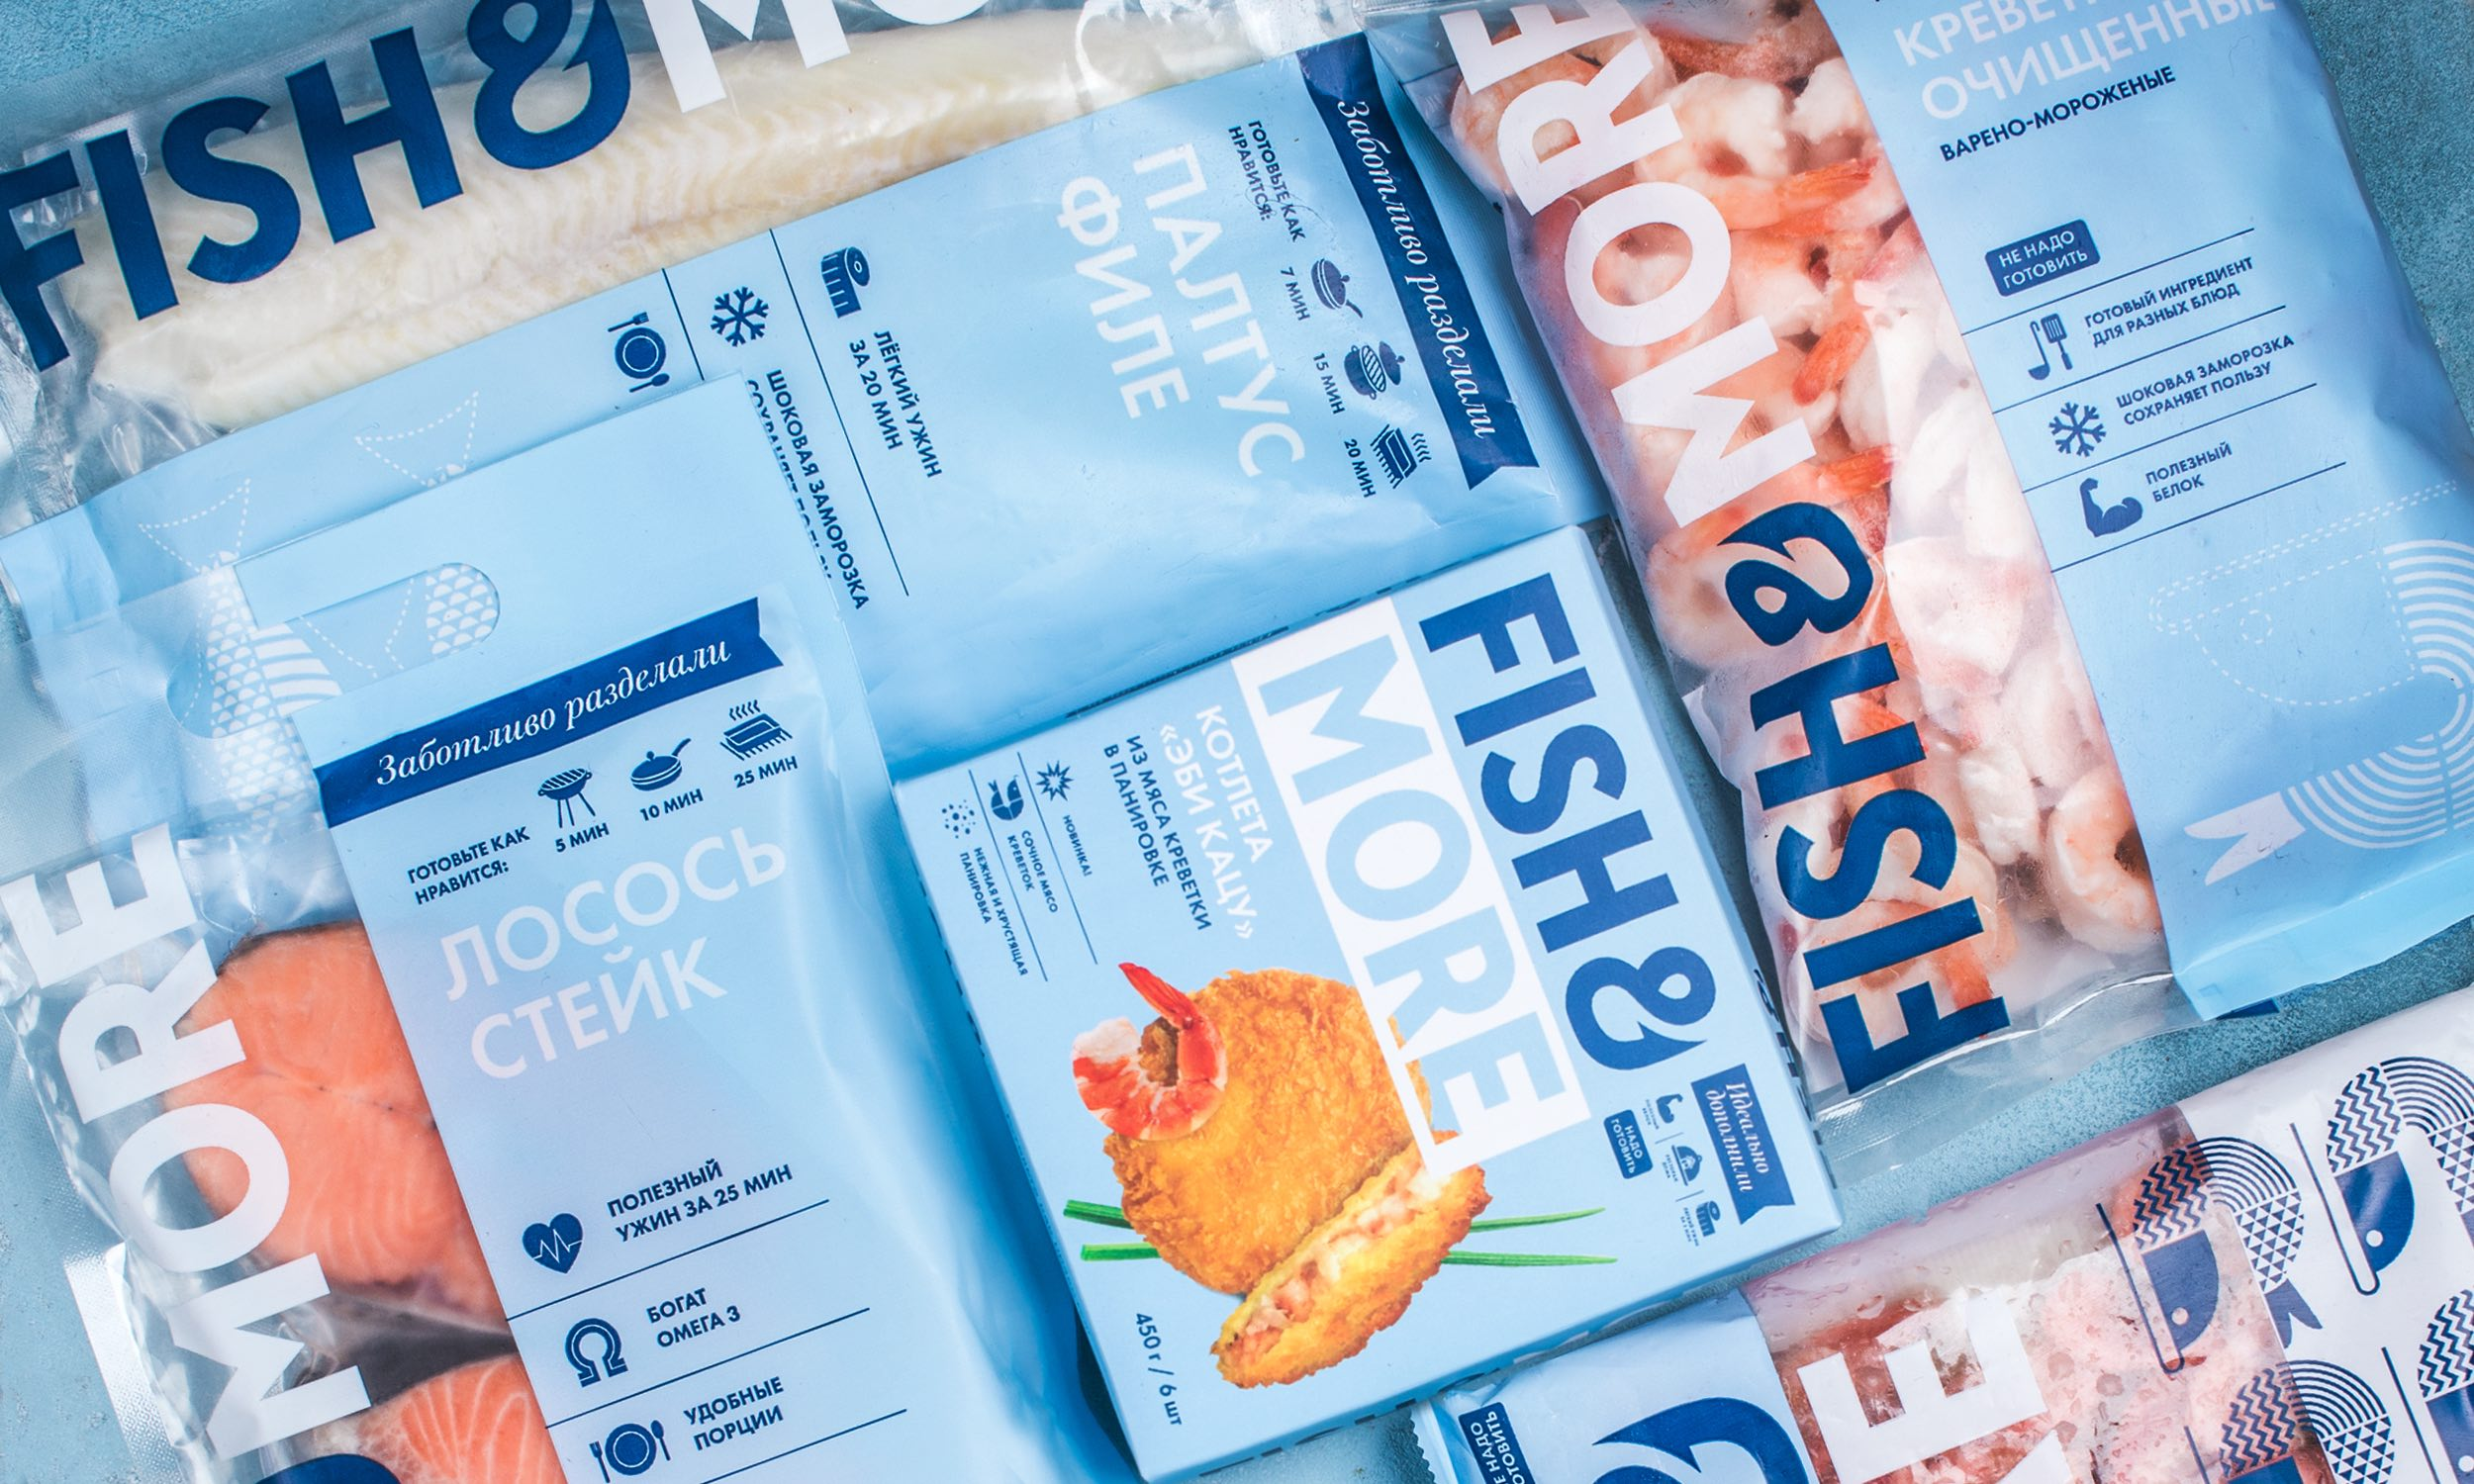 Fresh Rebranding Idea for Fish&More by Ohmybrand